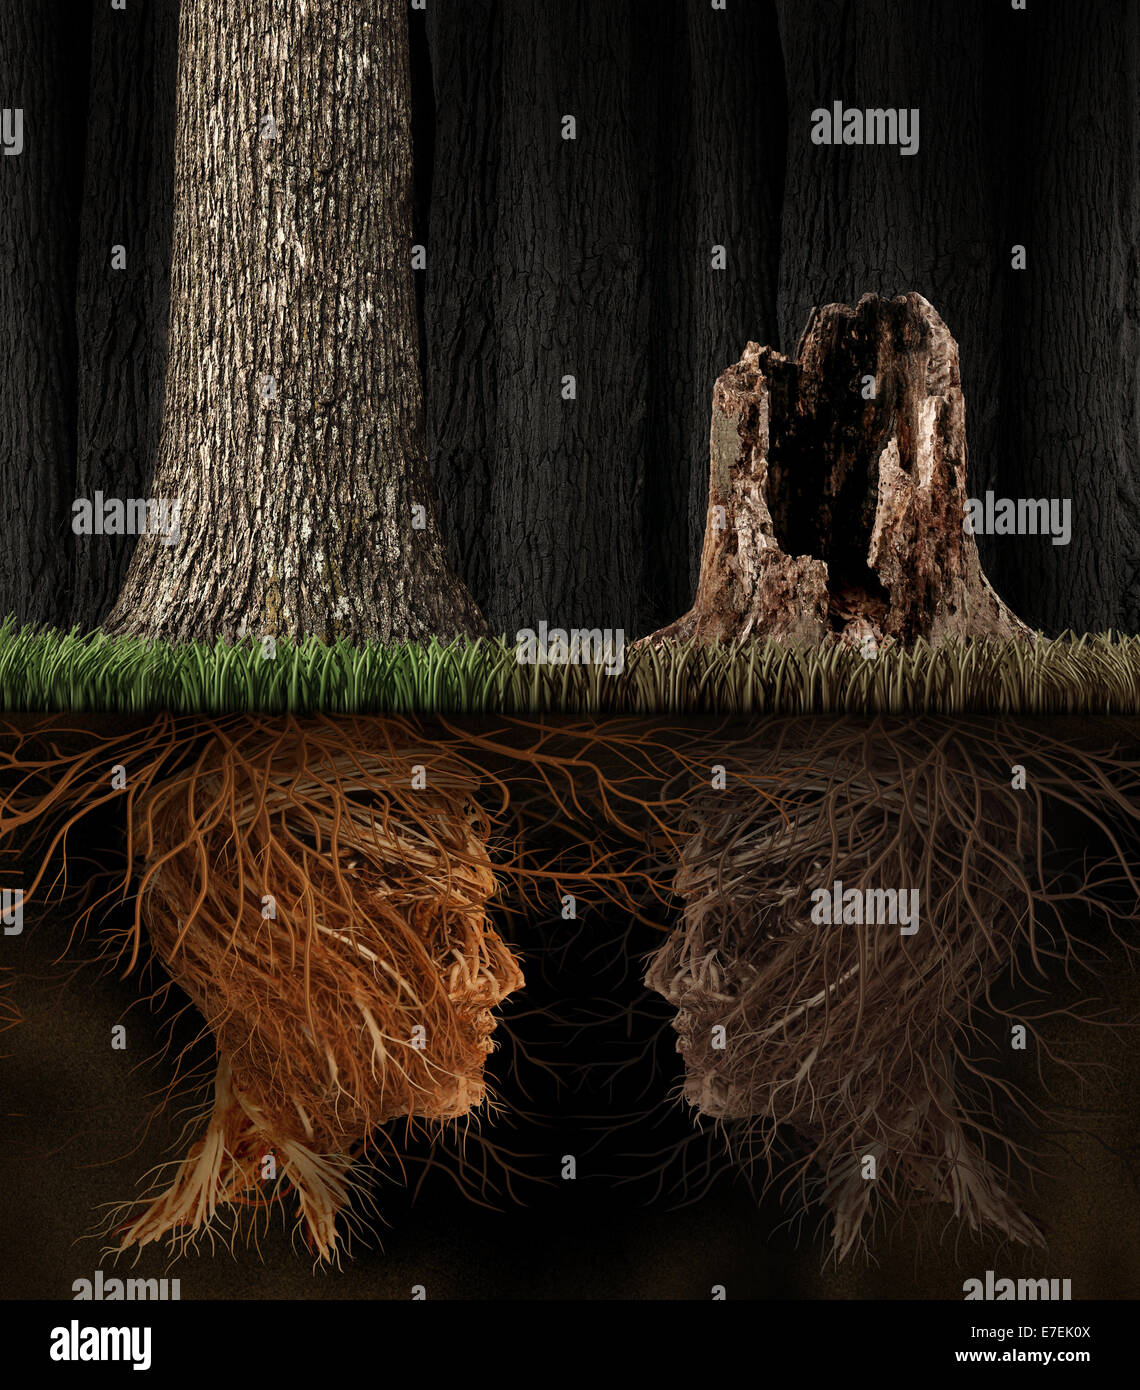 Grief And Grieving concept as two trees with roots shaped as human heads with one dead tree in a forest as a symbol Stock Photo